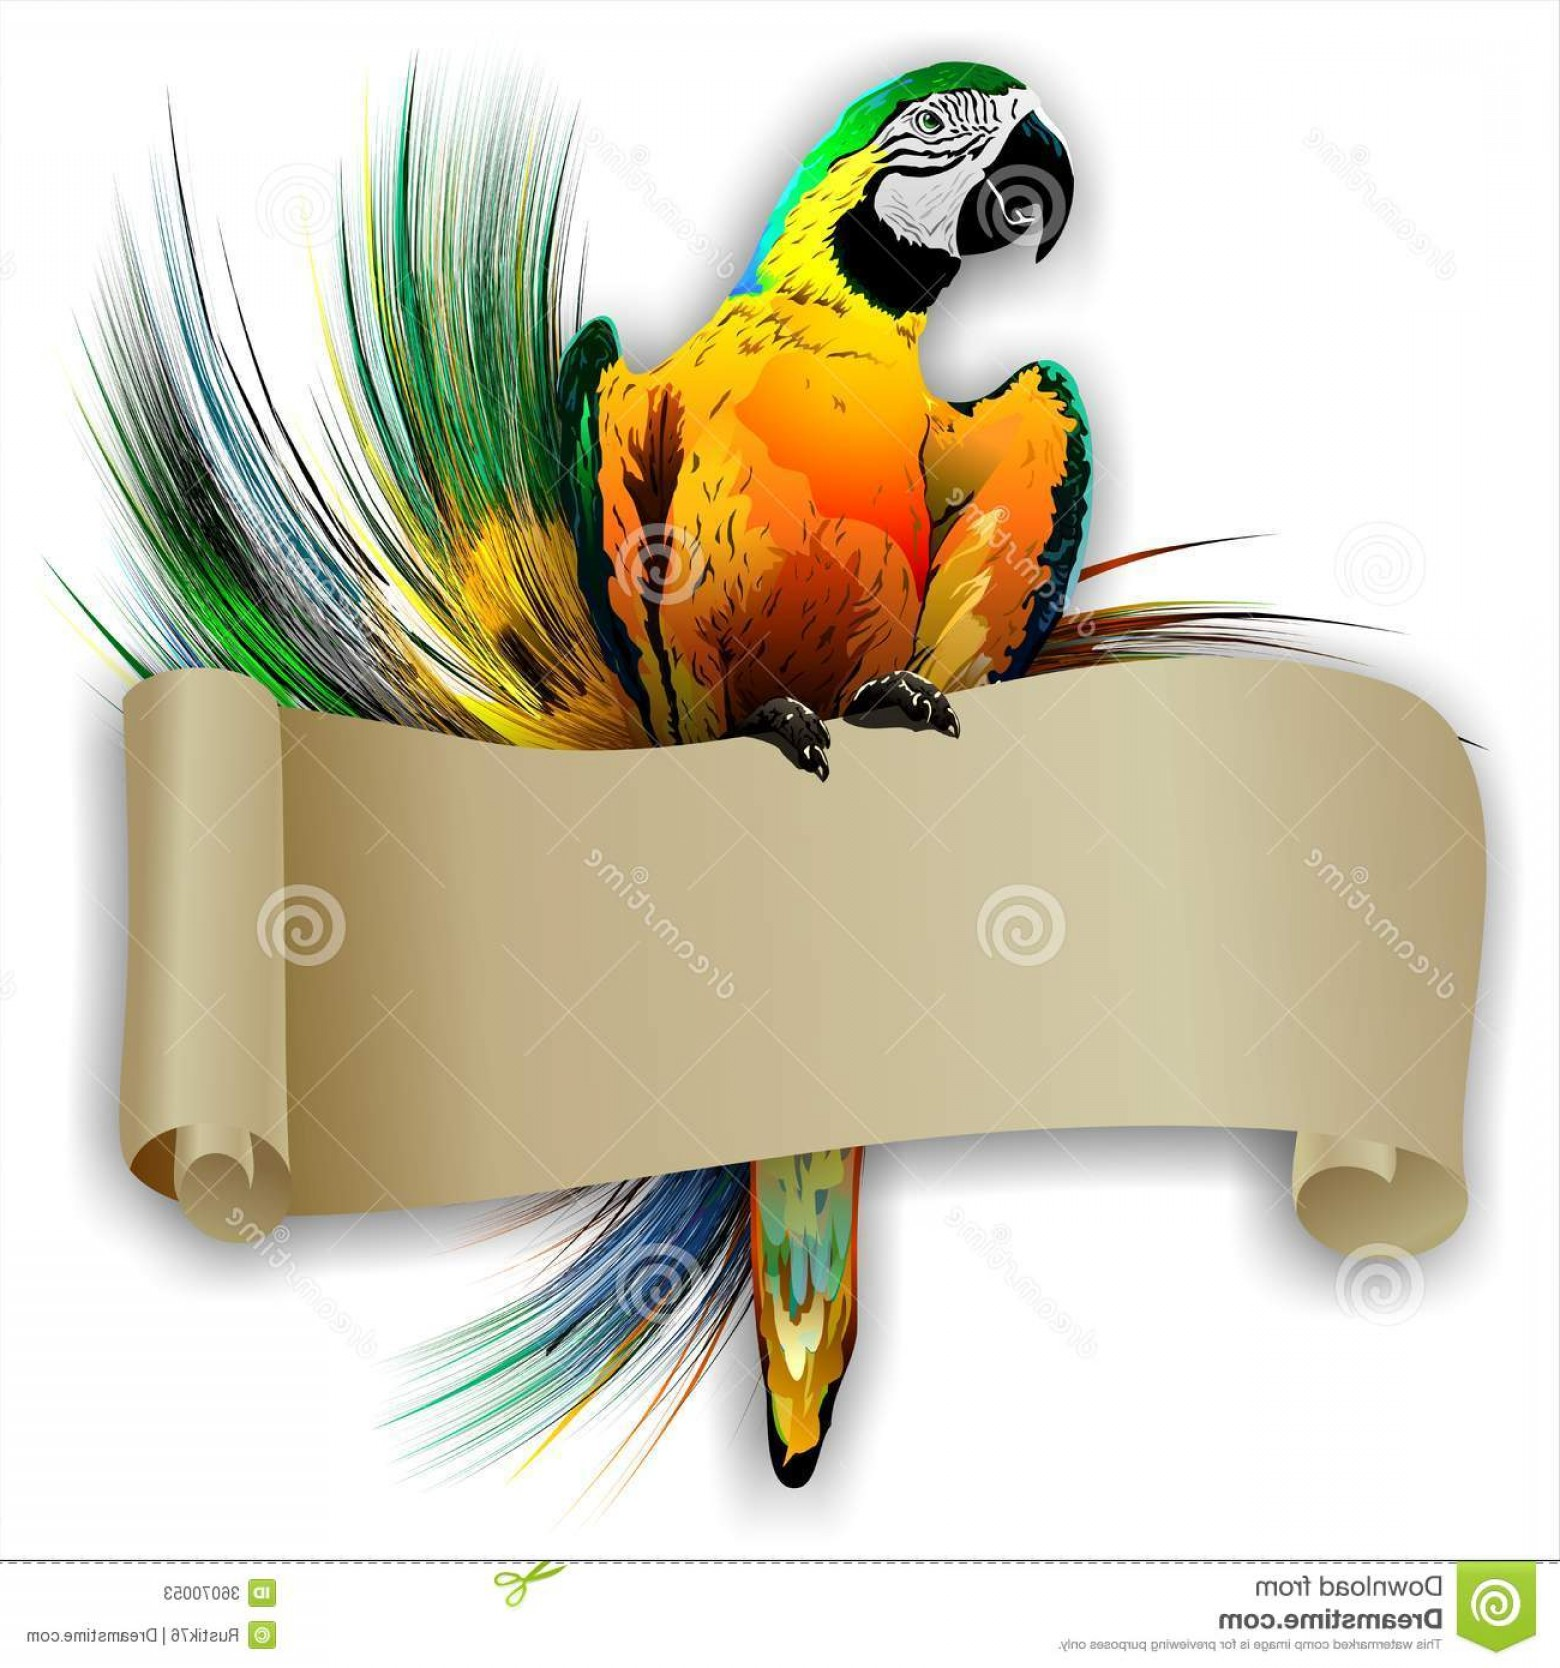 Abstract Vector Art Parrot: Stock Photos Parrot Empty Scroll Abstract Background Vector Image Bright Clean Color Image